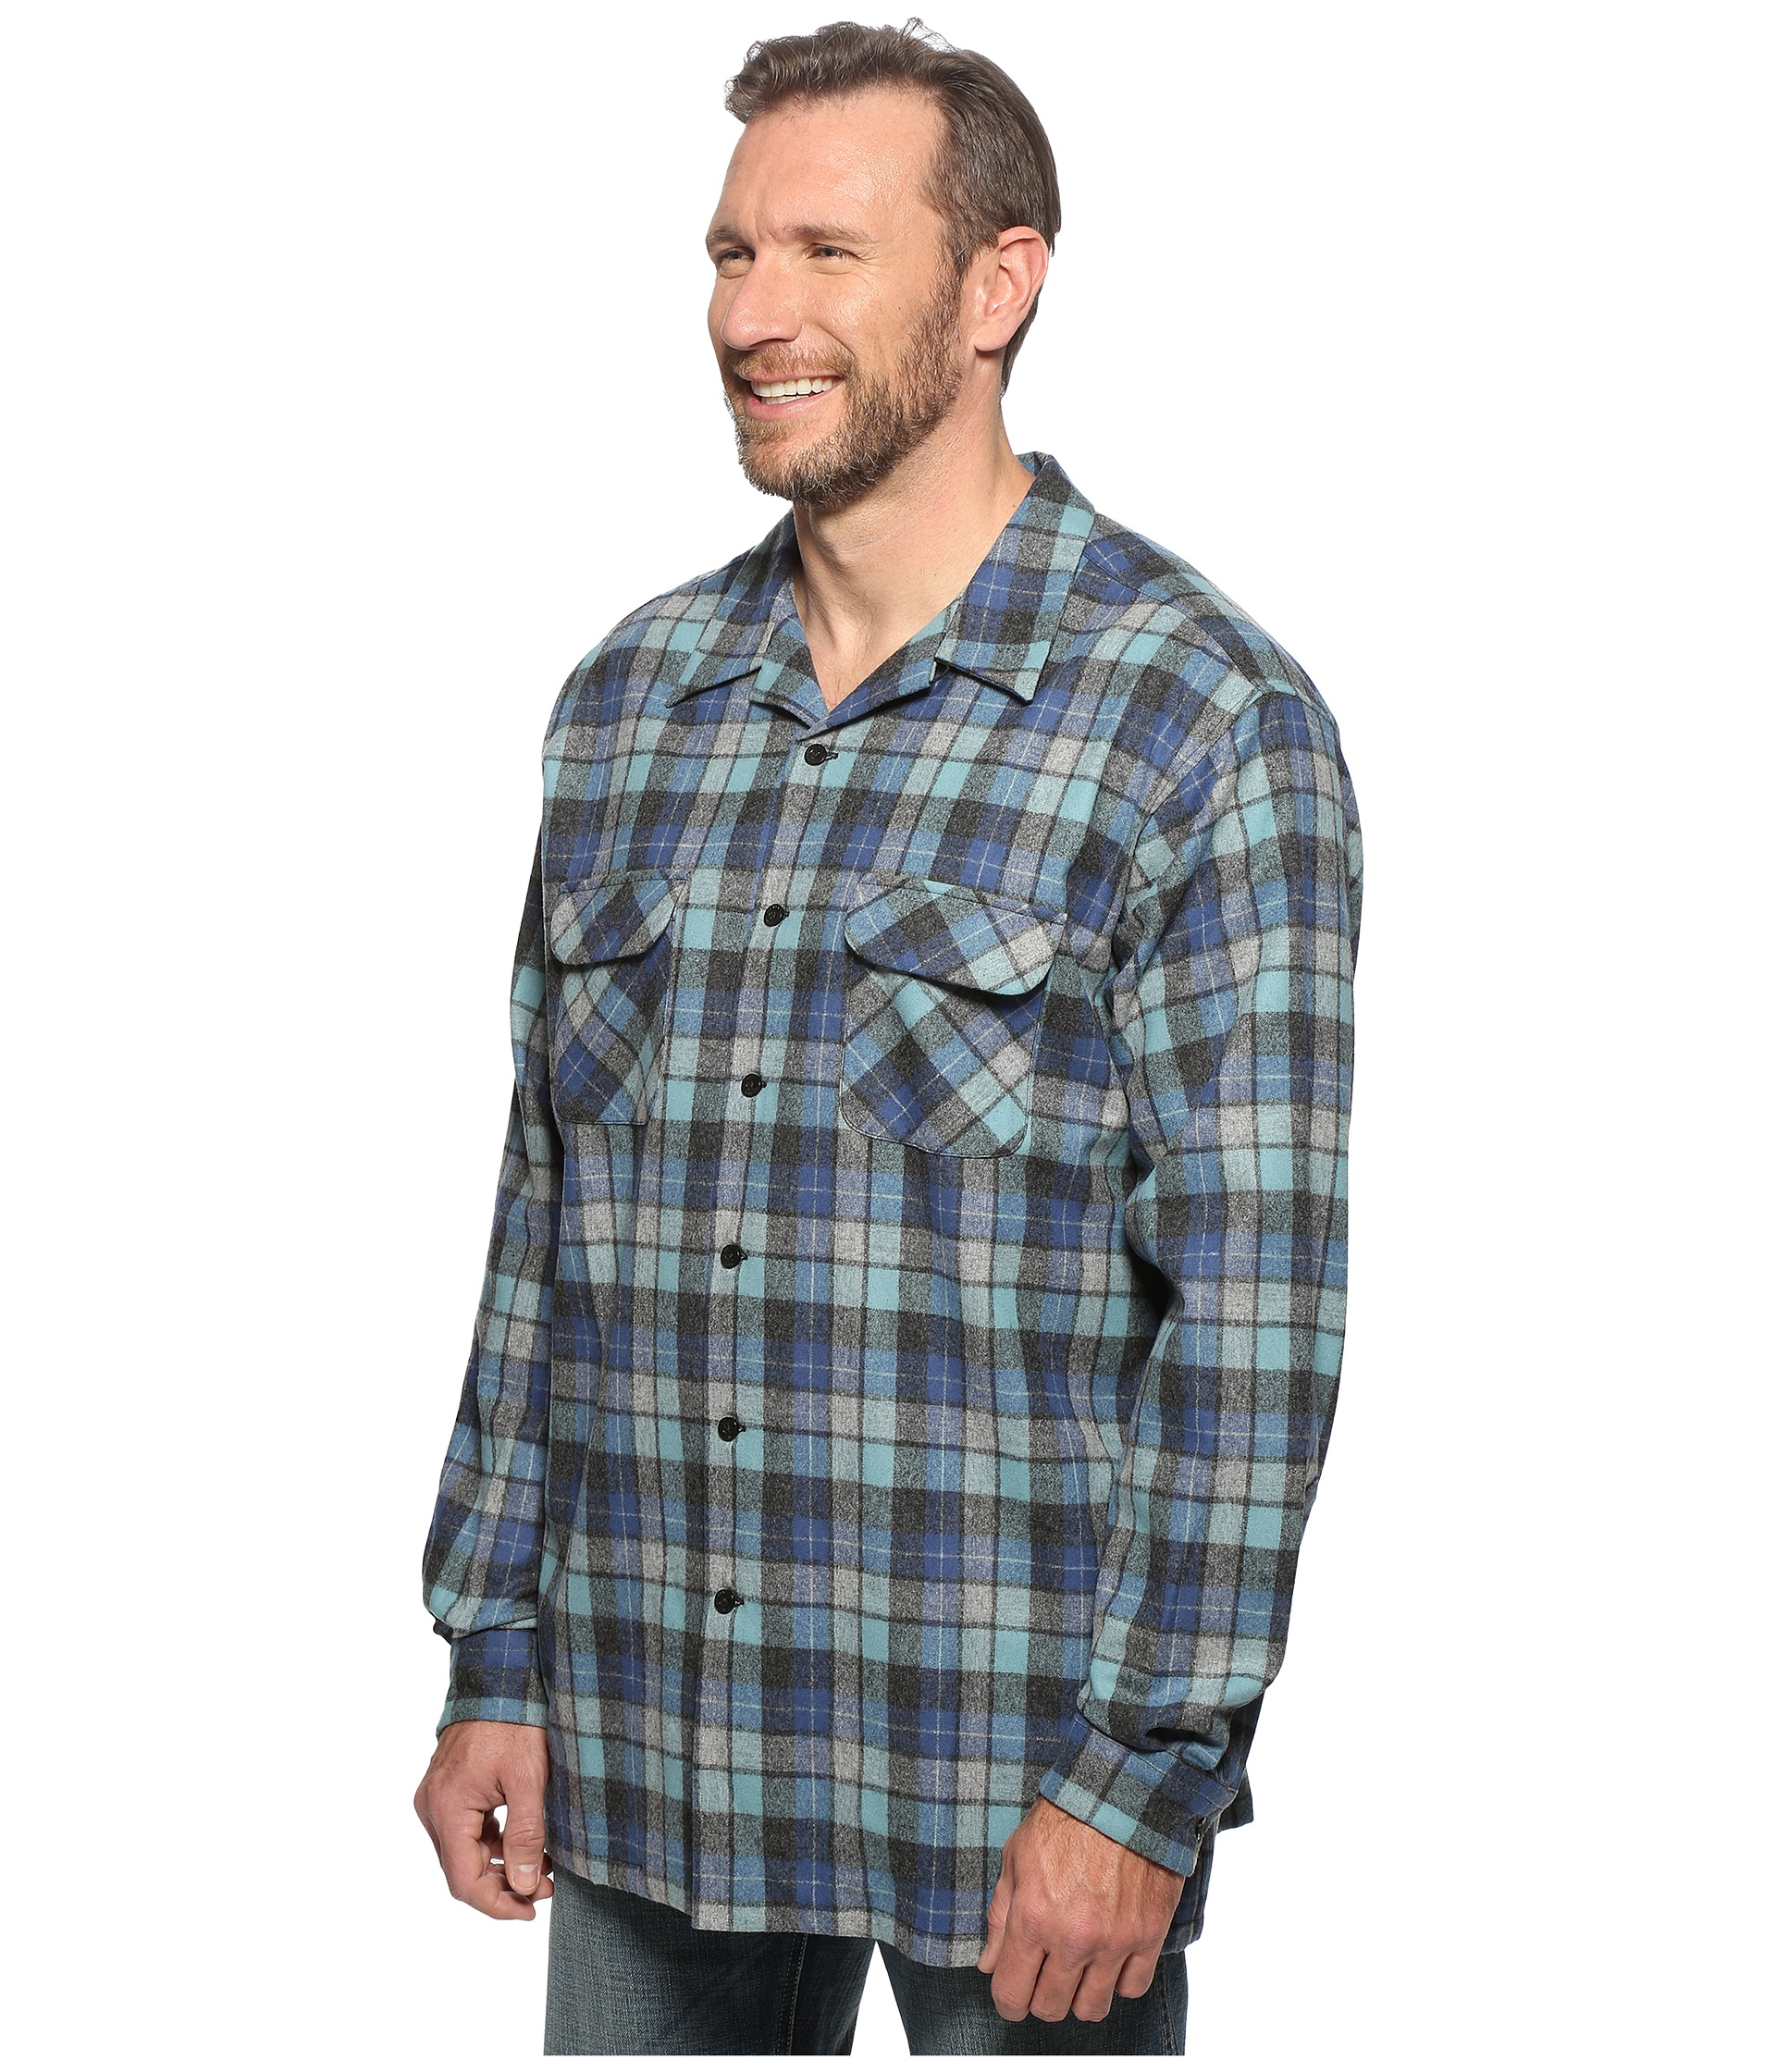 See all results for pendleton shirts for men. Pendleton. Men's Long Sleeve Classic-fit Board Shirt. from $ 84 49 Prime. out of 5 stars Pendleton. Men's Long Sleeve Canyon Shirt. from $ 68 05 Prime. out of 5 stars Pendleton. Men's Long Sleeve Button Front Classic Lodge Shirt. from $ .